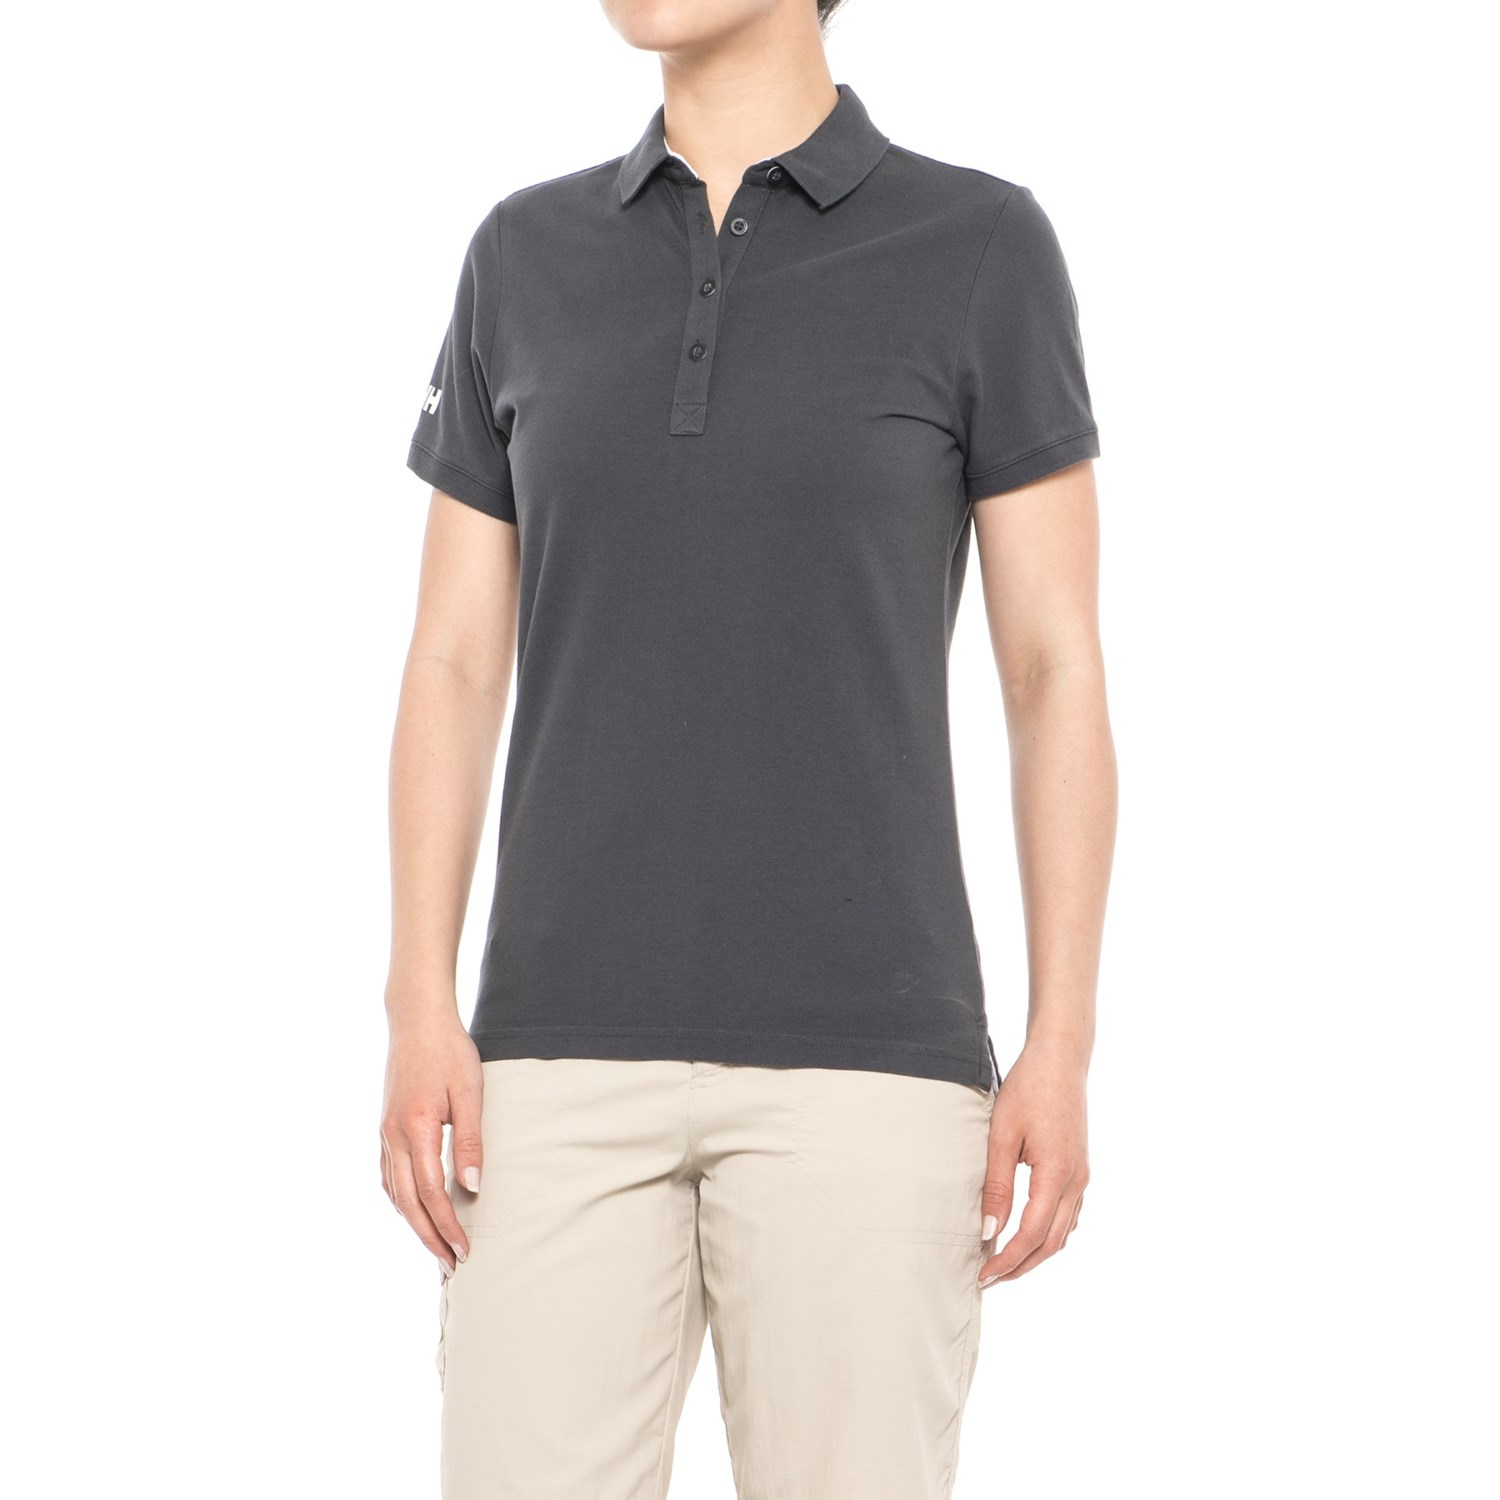 Helly Hansen Pique 2 Polo Shirt For Women Save 88